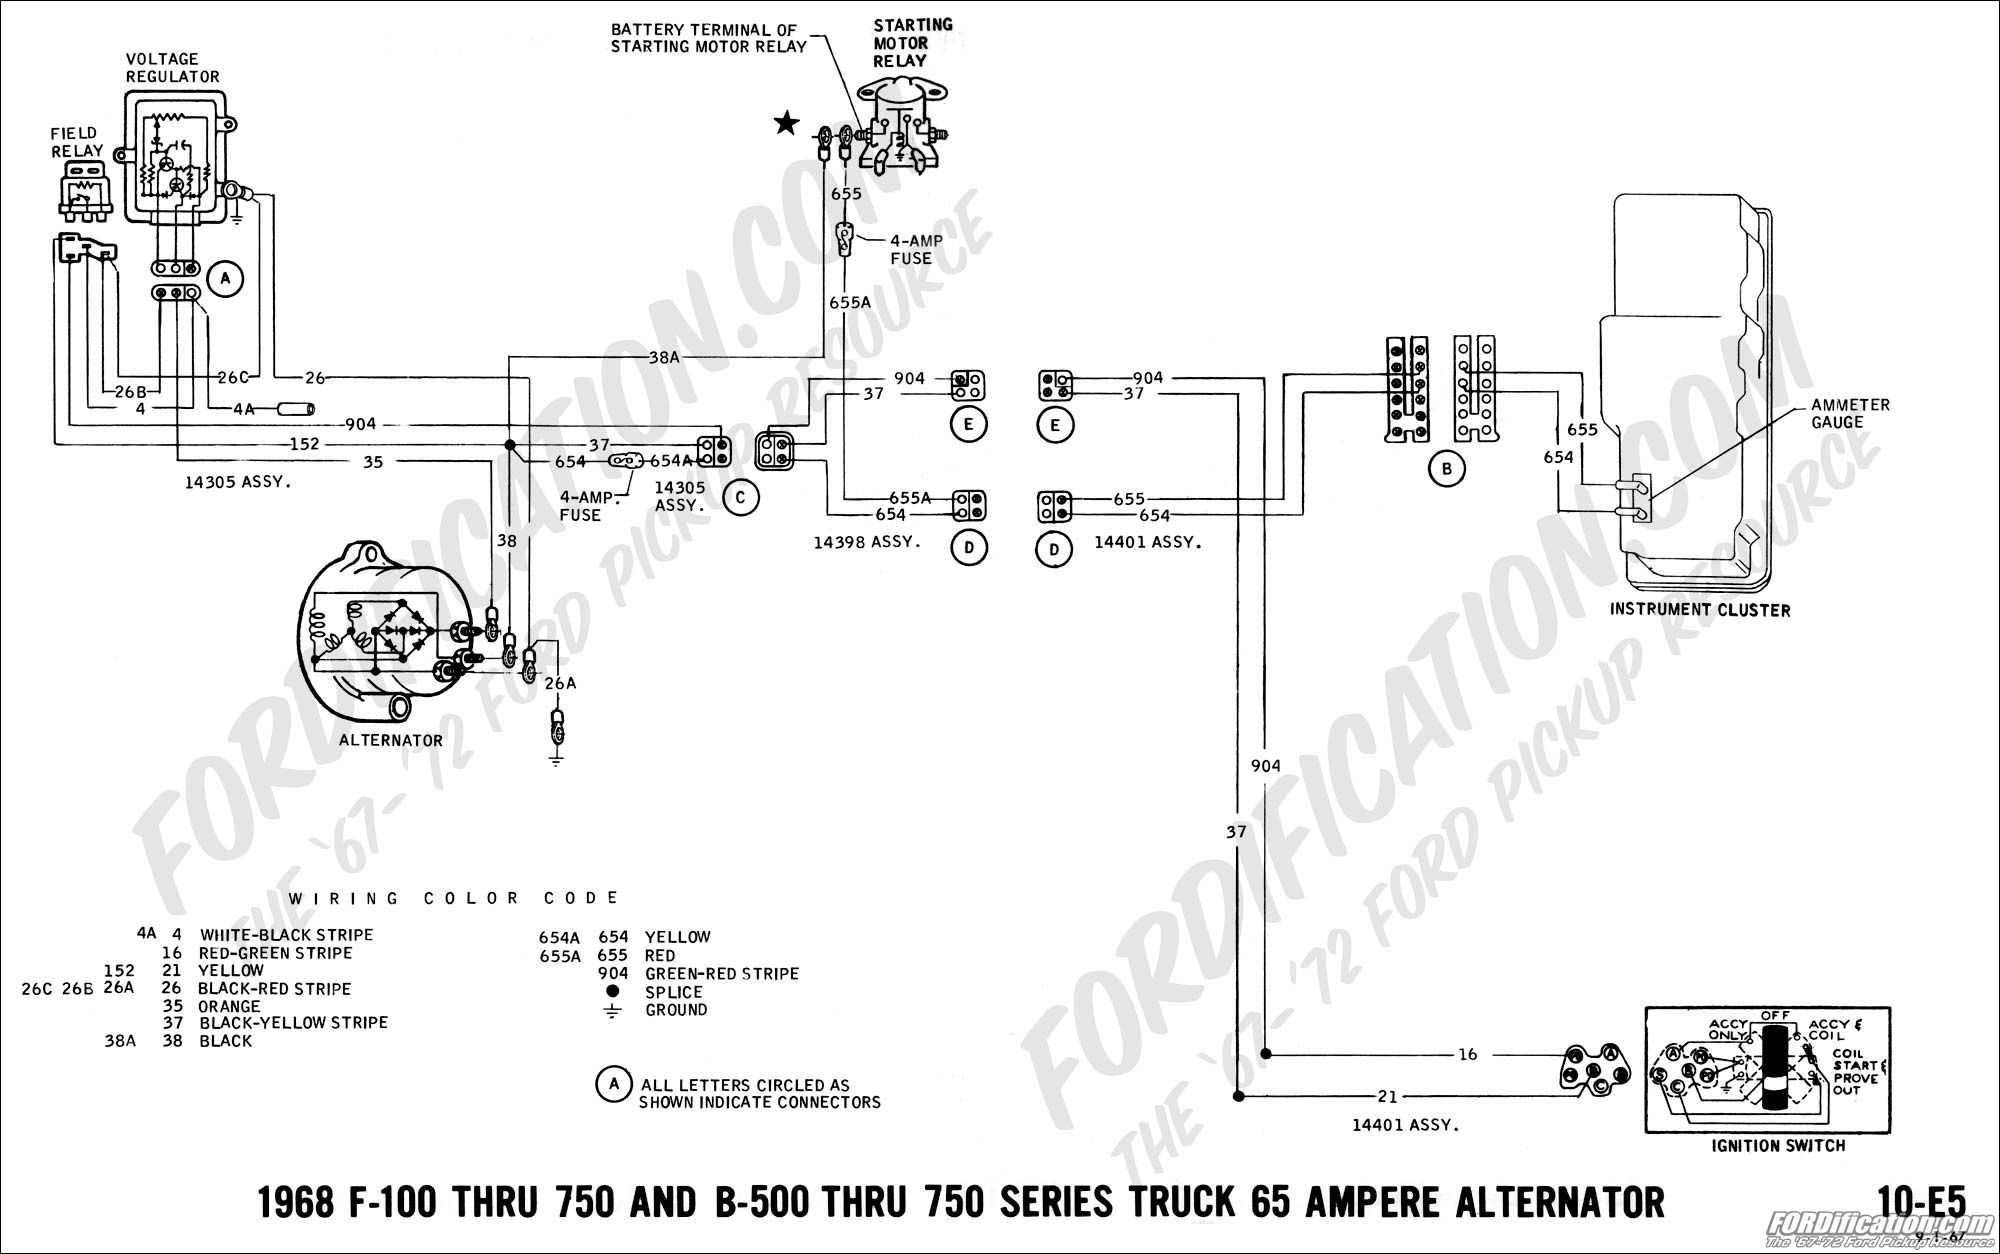 1964 F100 Wiring Diagram | Wiring Diagram A Wiring Diagram For Ford Pick Up on